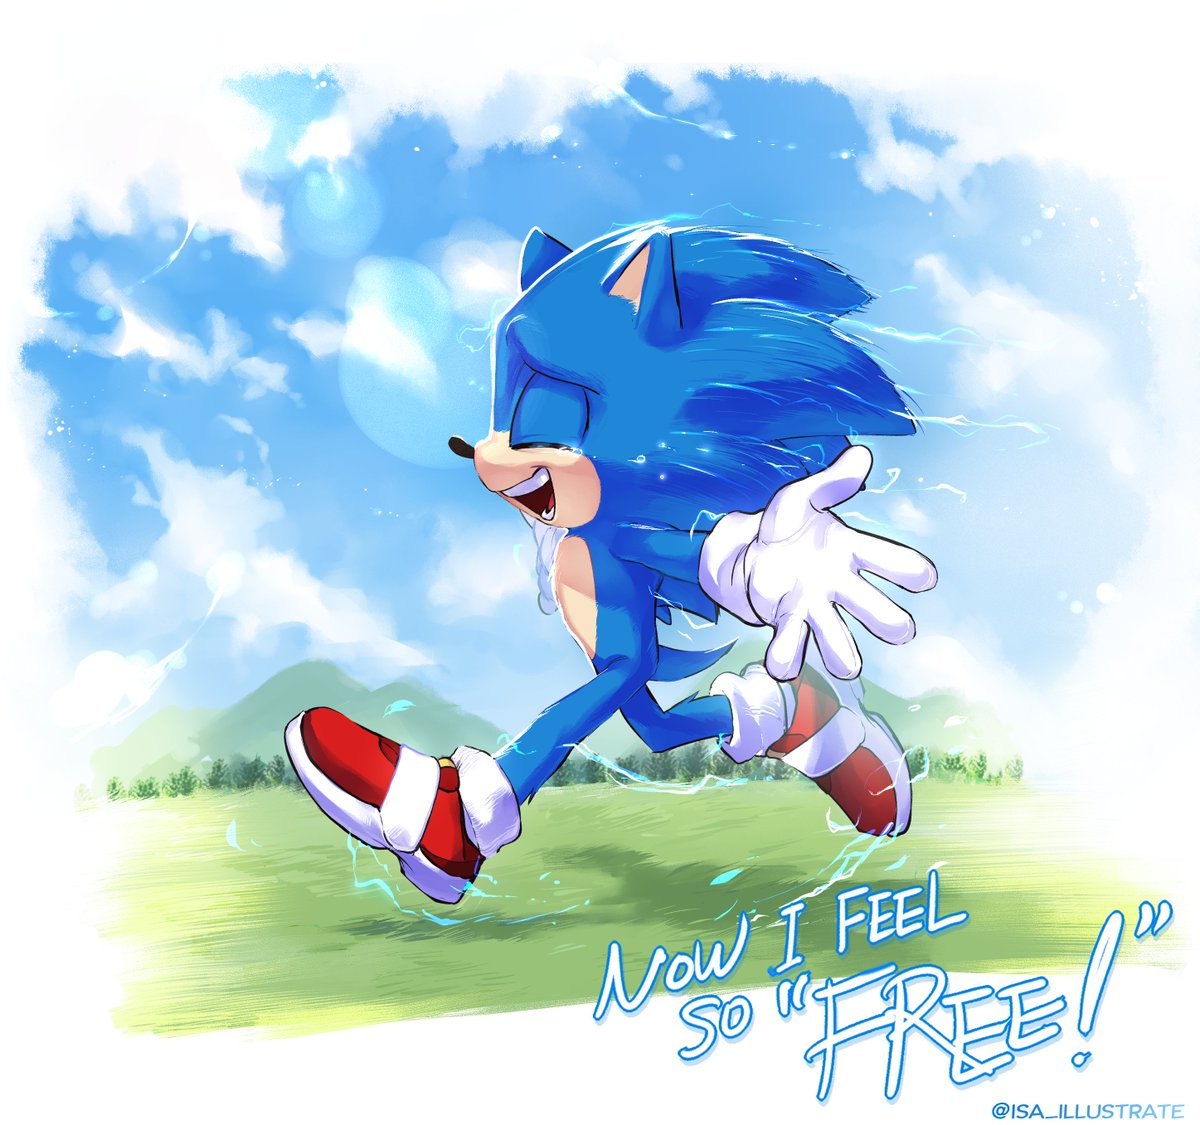 이사𝗜𝘀𝗮 On Twitter I Redrew My Old Movie Sonic Fan Art I Was So Stressed Out So I Thought I Need Some Rest And Today Morning 7am I Came Out For A Bit Of